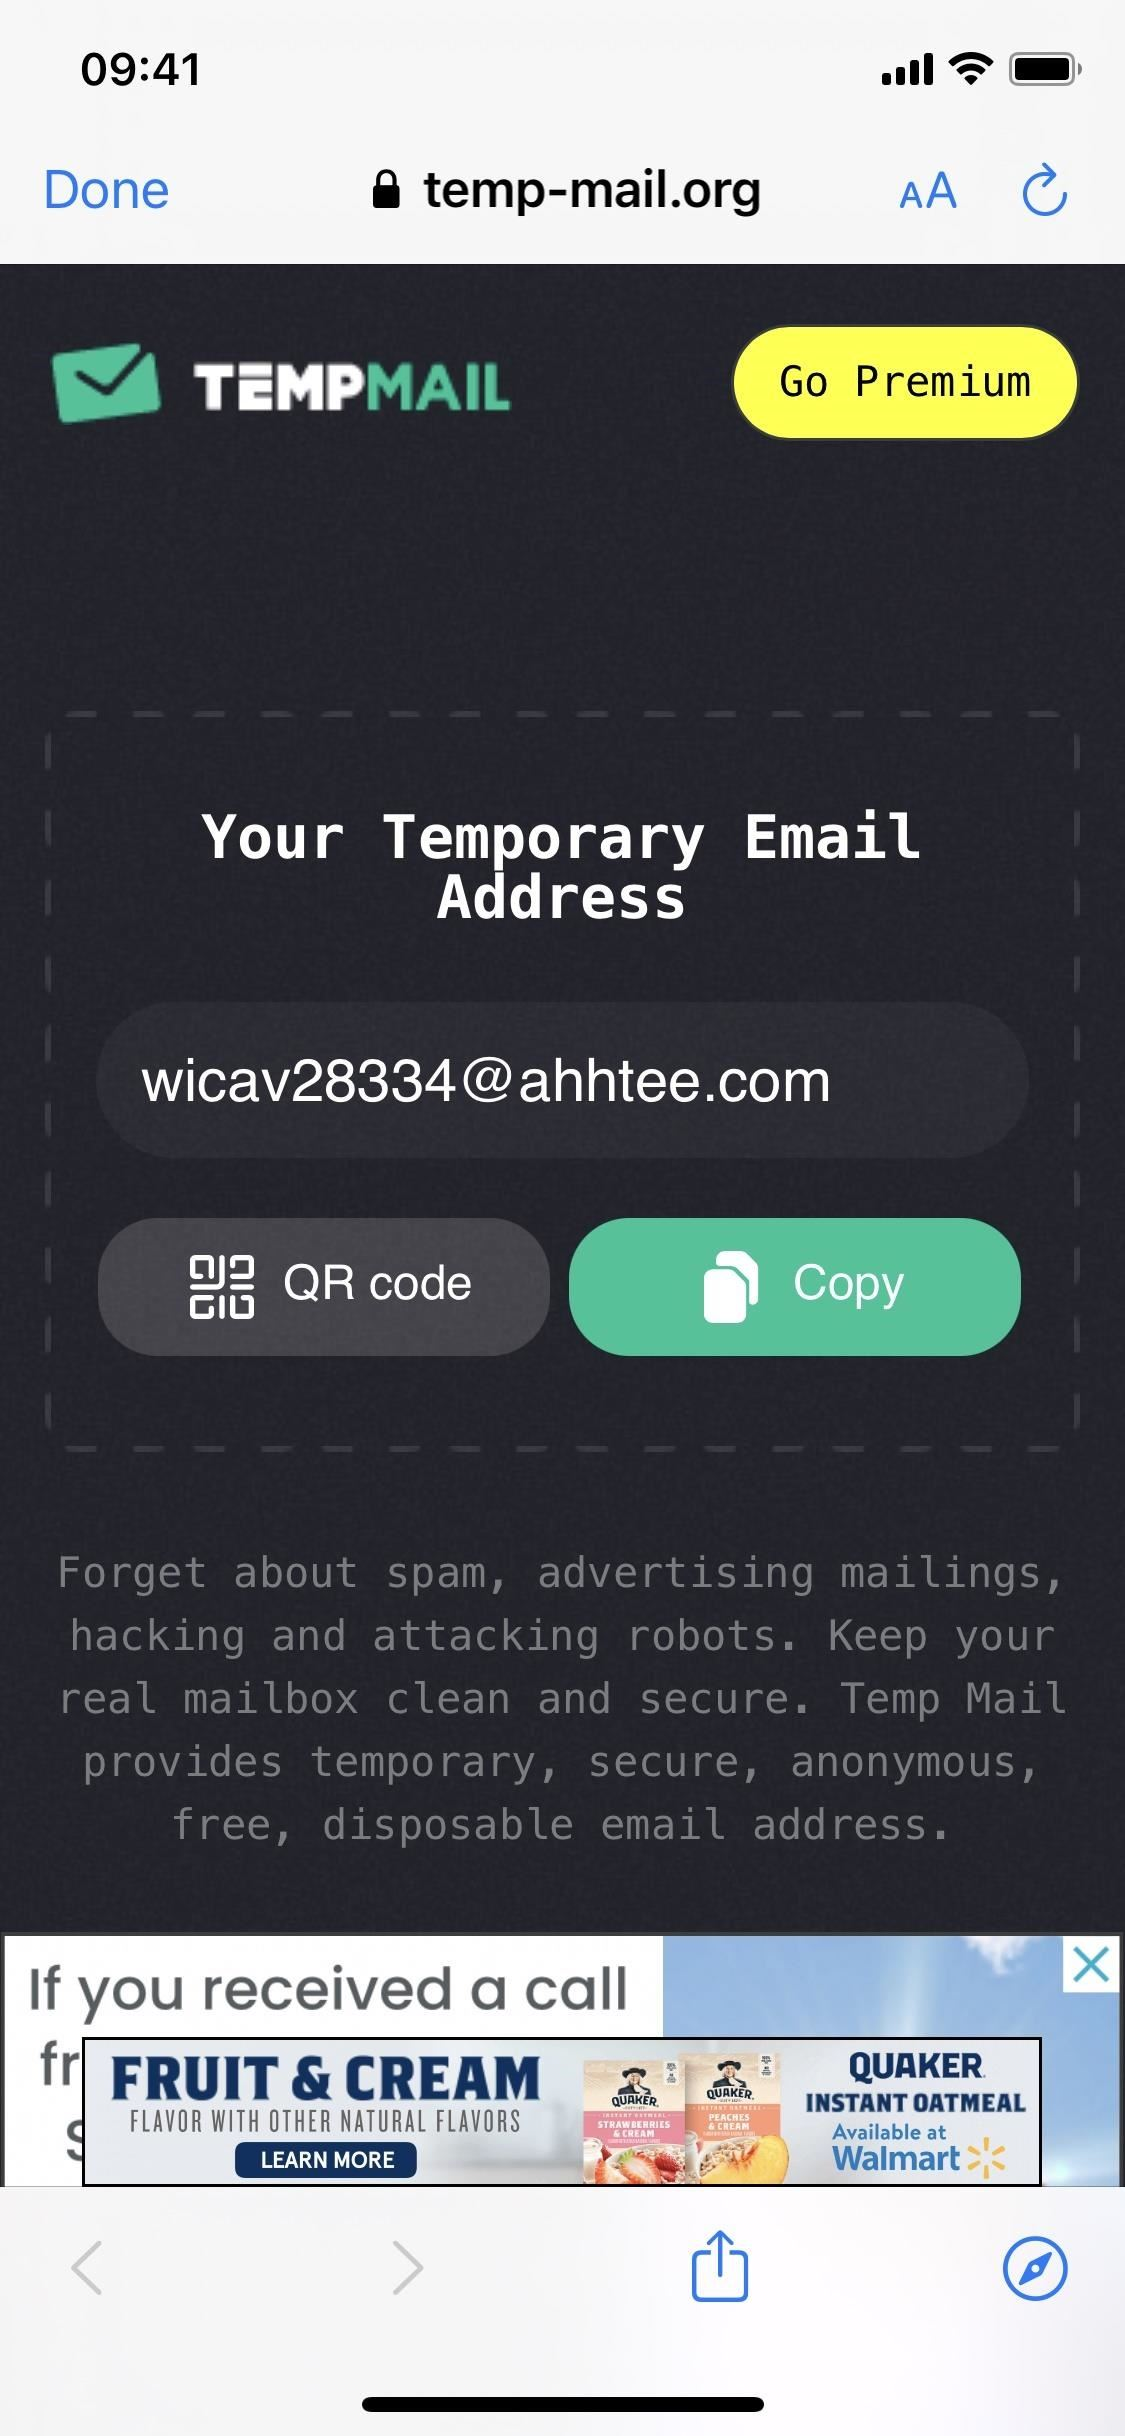 Quickly generate anonymous junk email addresses on your iPhone to protect your real email accounts from spam